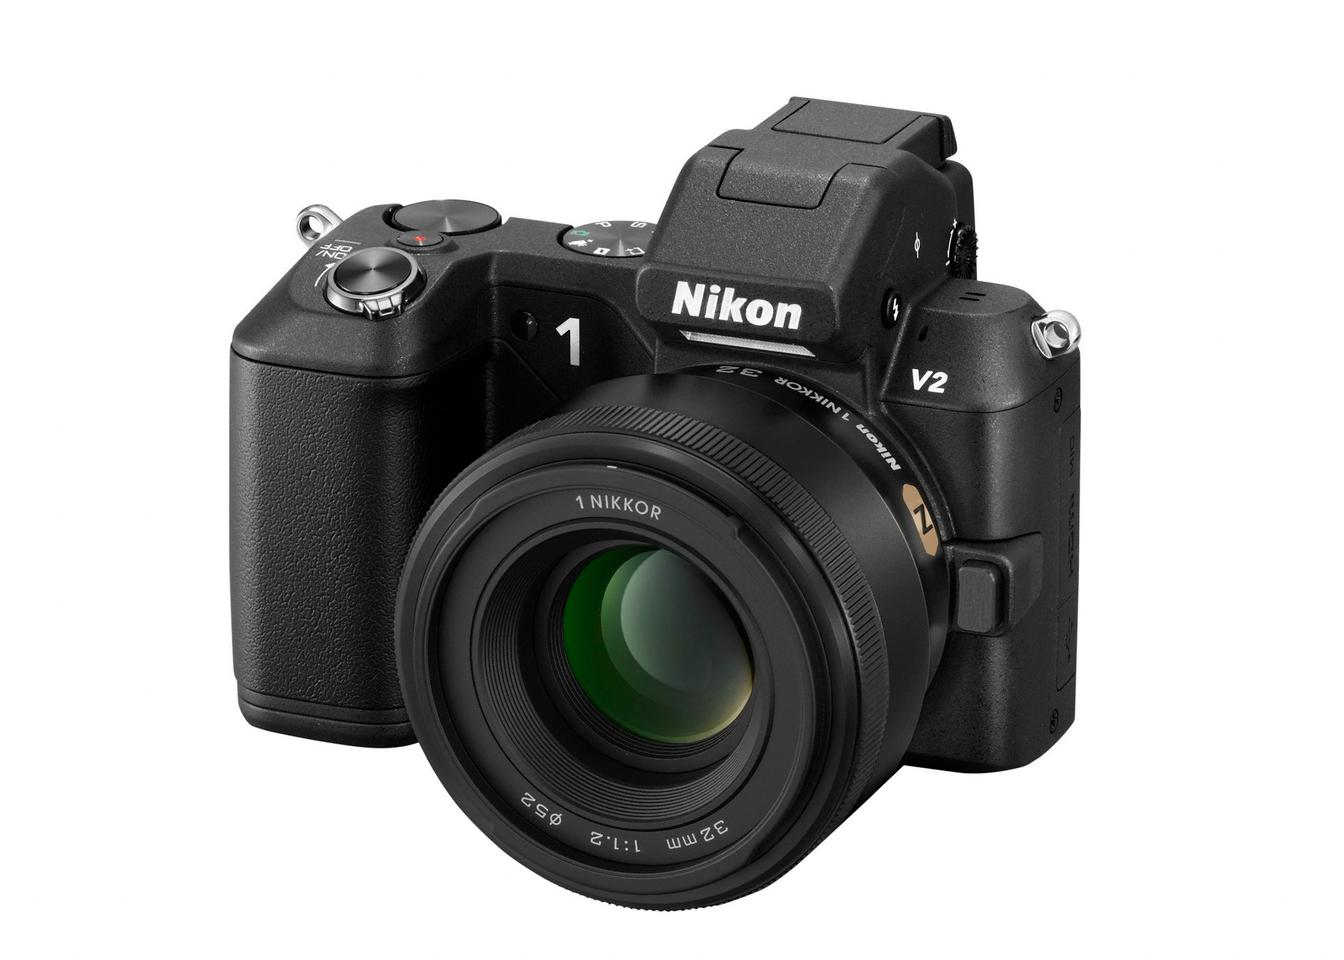 The Nikon 1 NIKKOR 32mm f/1.2 features Nano Crystal Coat, Silent Wave Motor and a manual focus ring